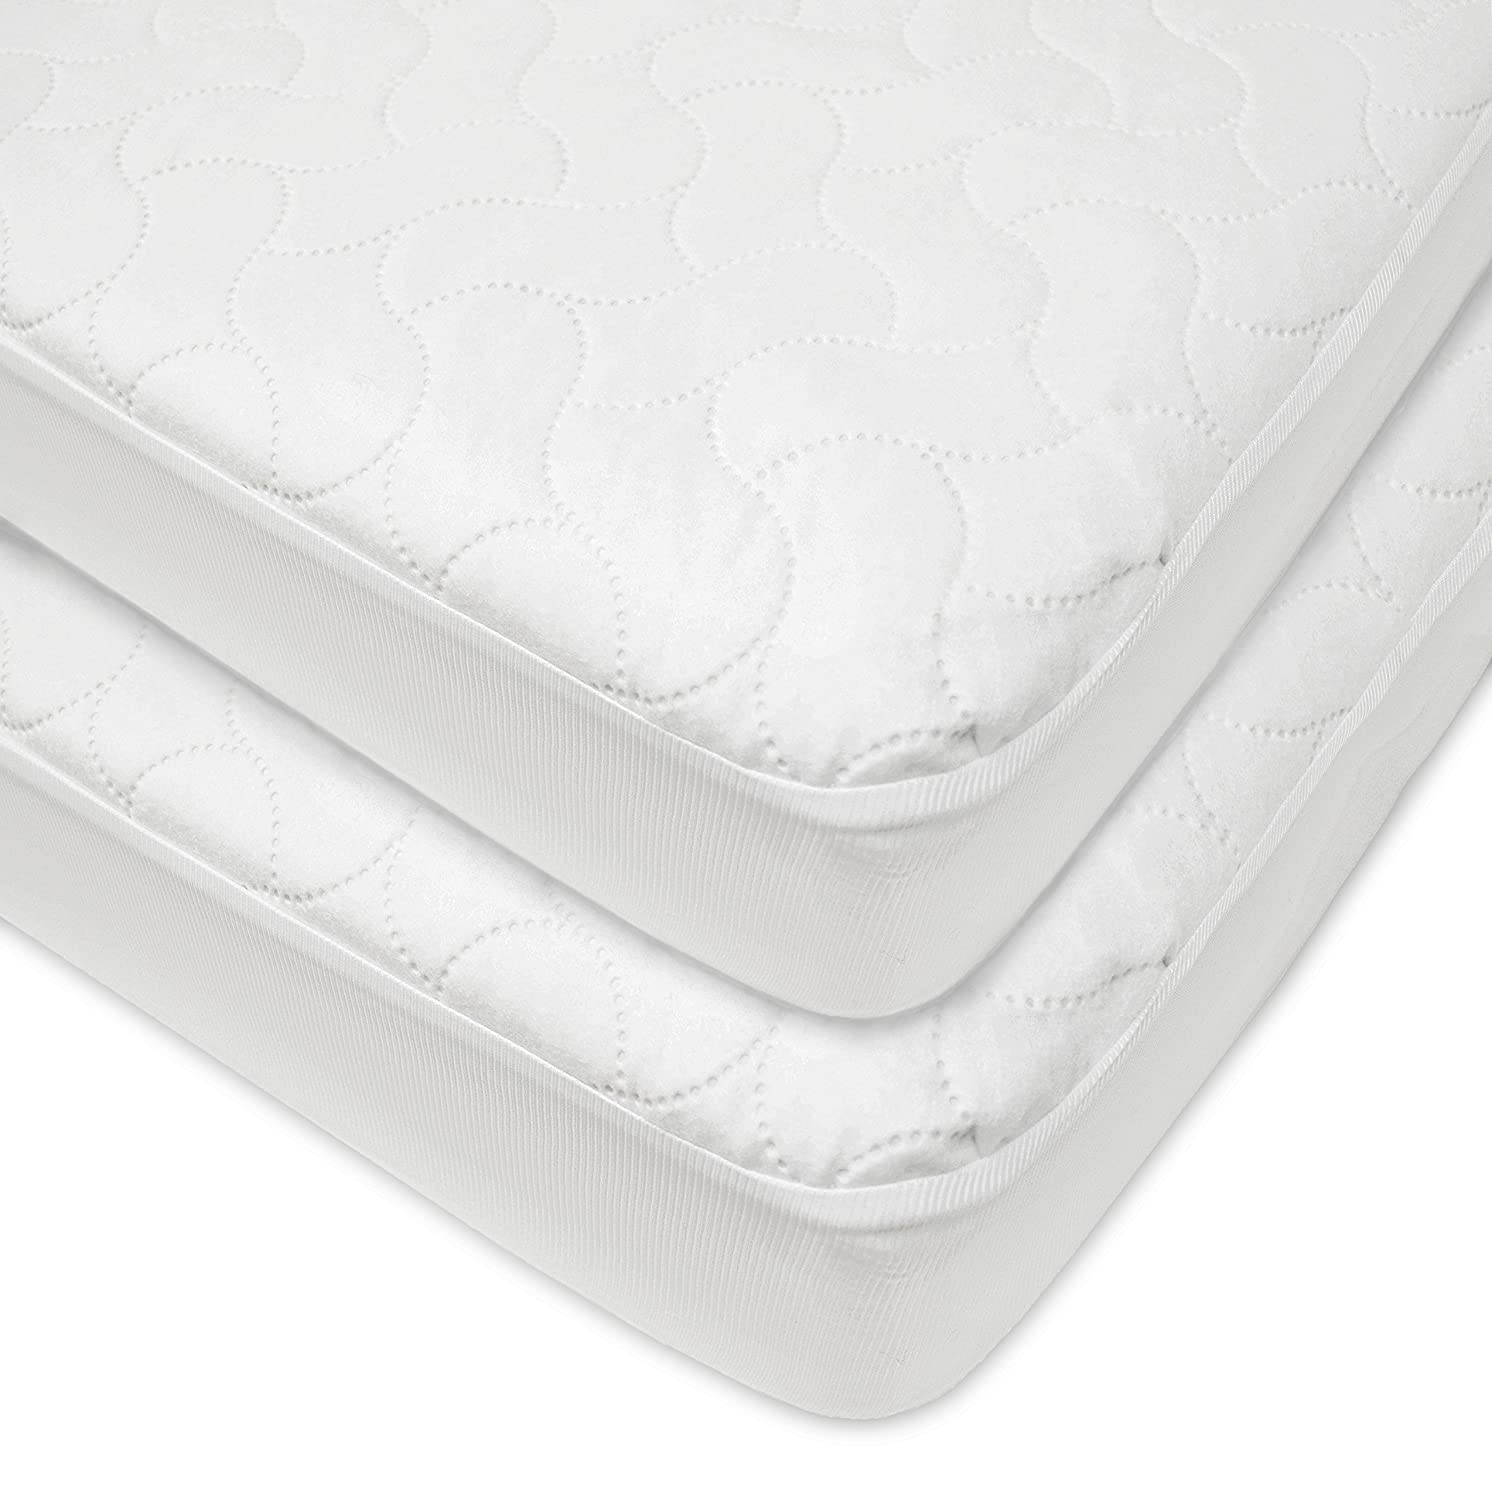 American Baby Company Waterproof Fitted Pack N Play Playard Protective Mattress Pad Cover, White 2866 playard pad